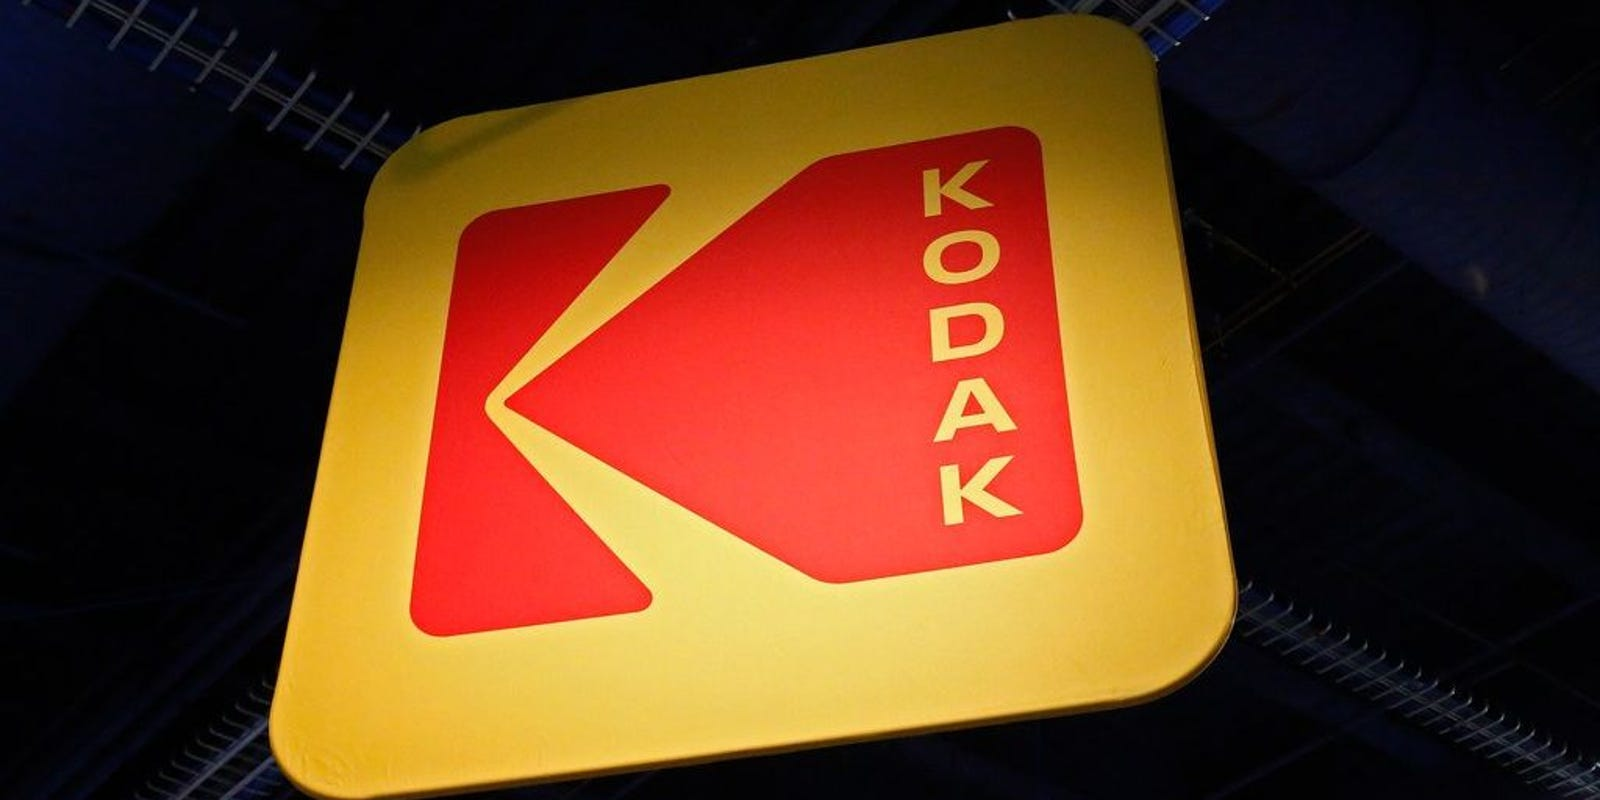 SEC investigating Kodak over announcement of $765-million government loan, report says